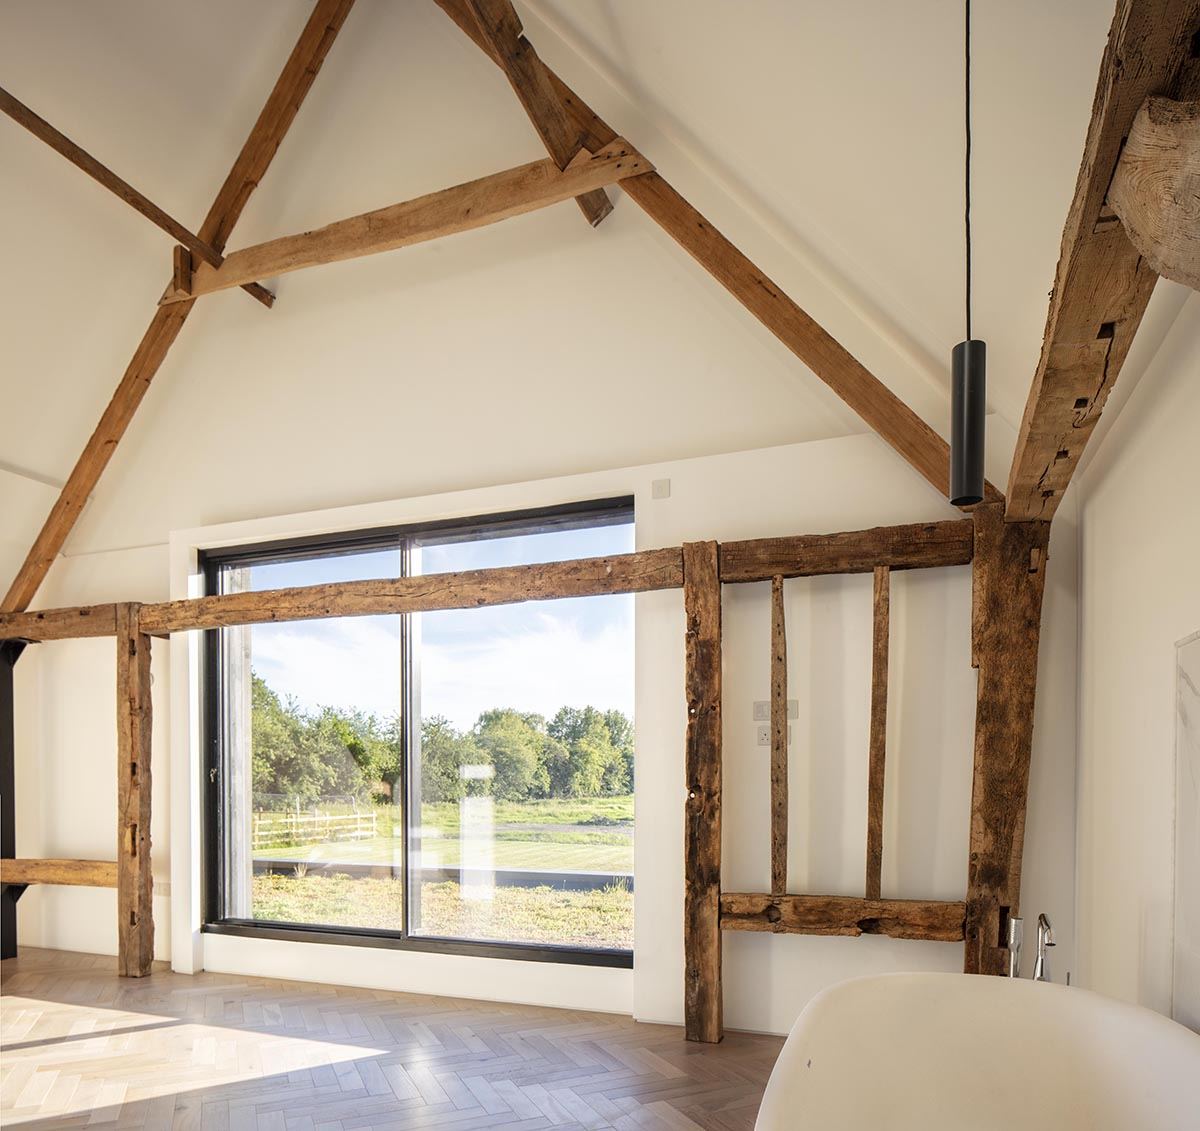 white painted room with large window and exposed wooden beams